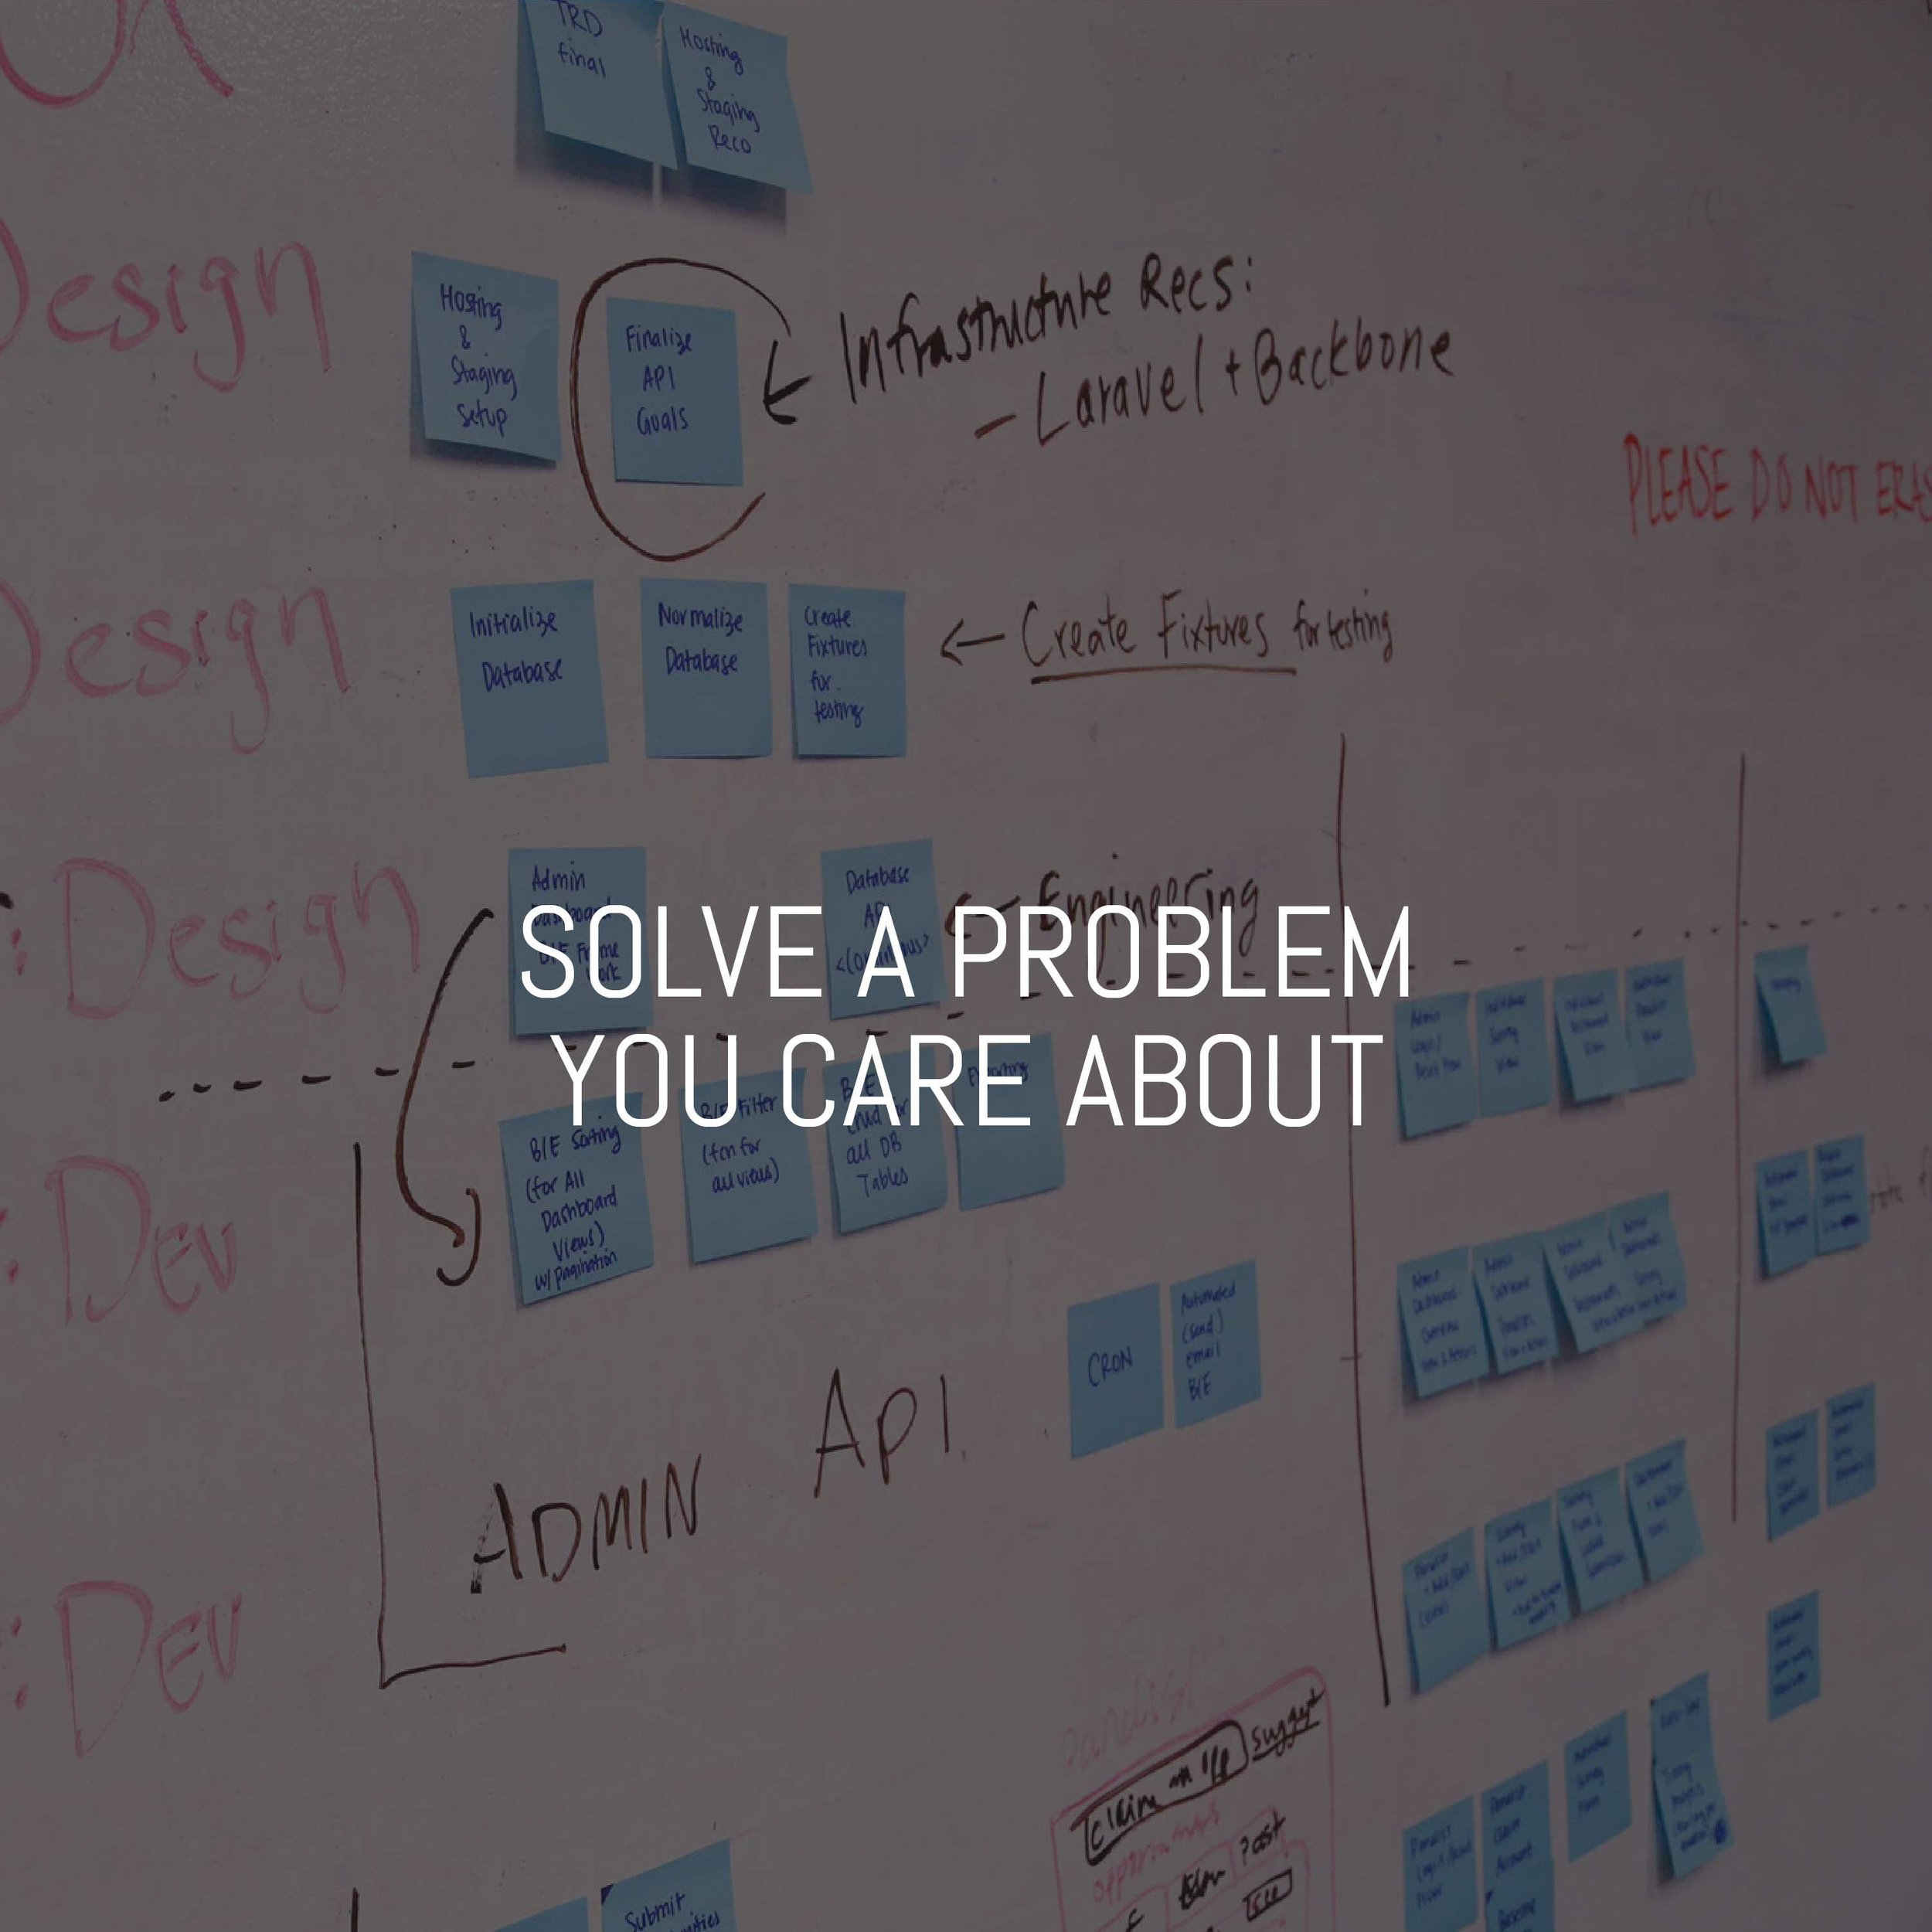 SOLVE-A-PROBLEM-YOU-CARE-ABOUT-.jpg